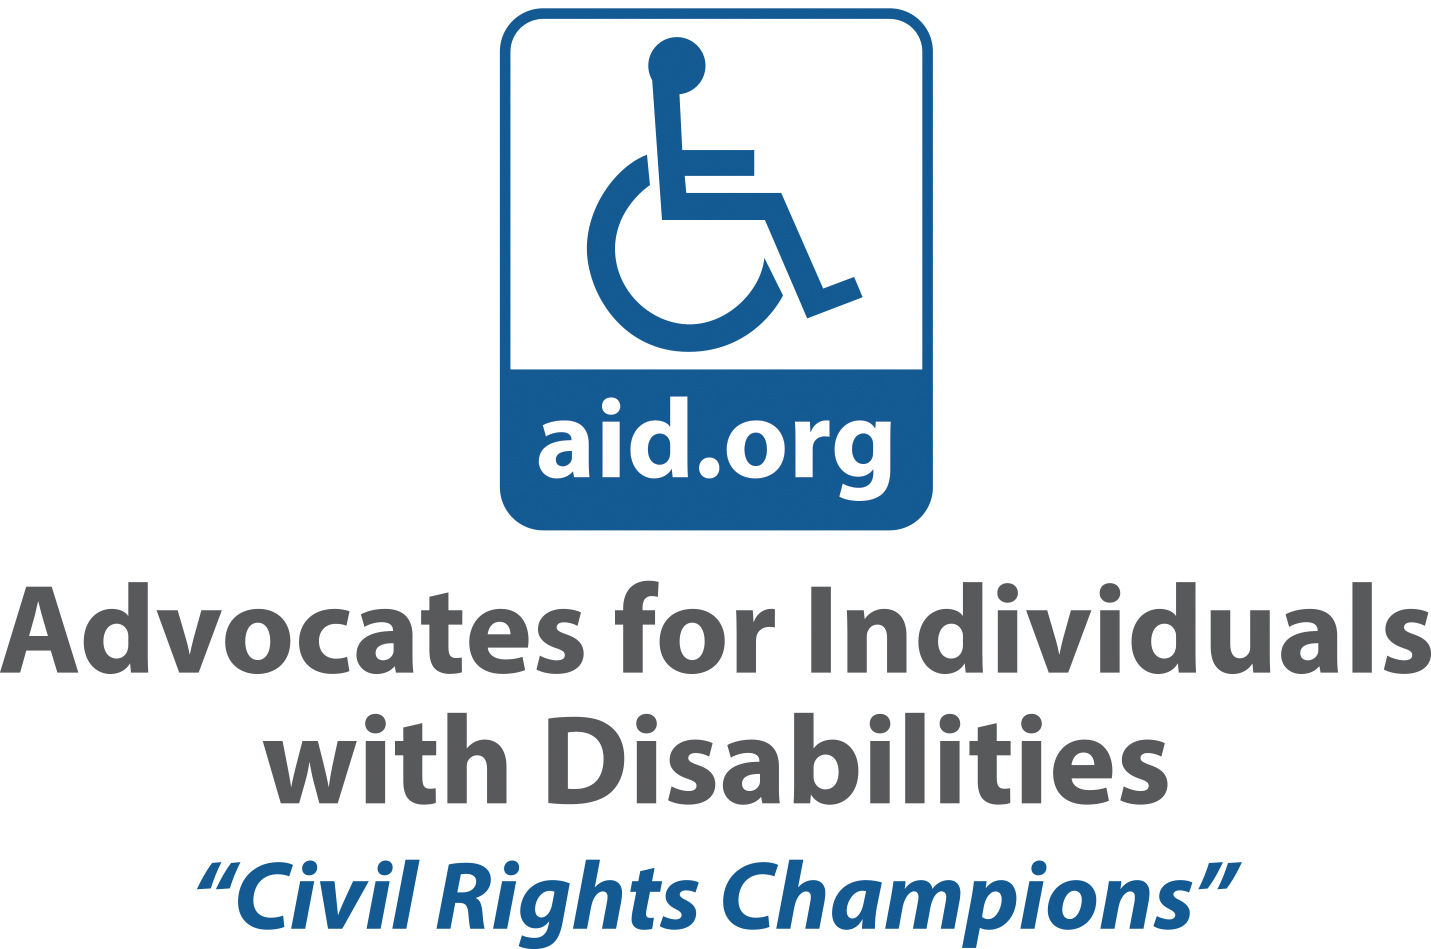 discrimination against specialized individuals with disabilities Section 504 is a civil rights law that prohibits discrimination against individuals with disabilities section 504 is intended to ensure that the child with a disability has equal access to an education.